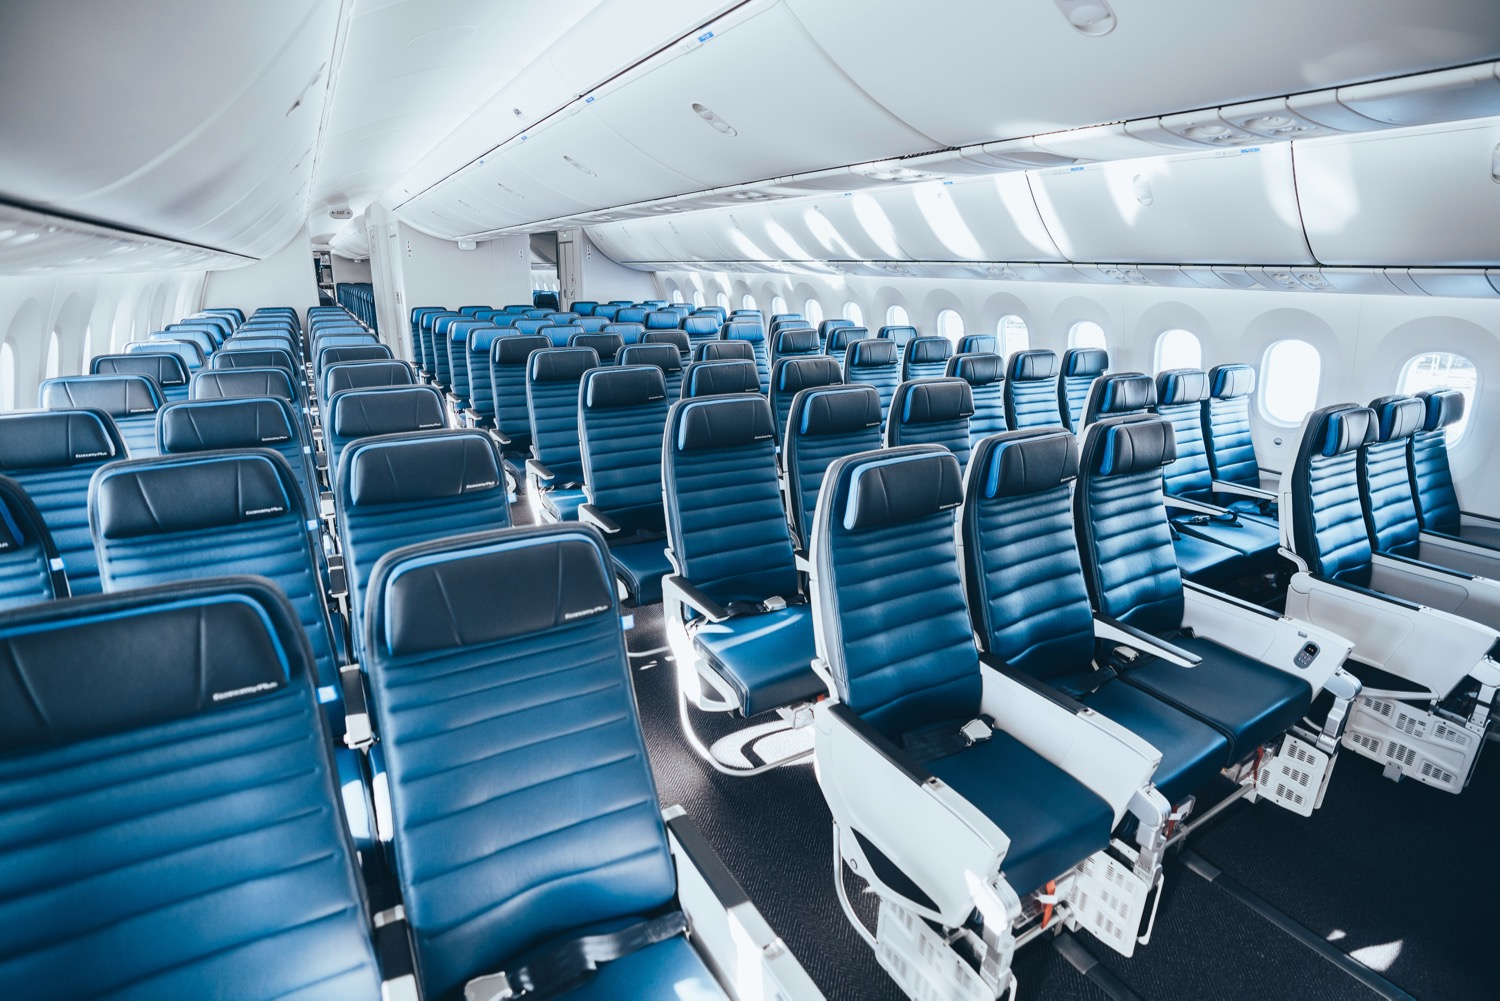 United Expands Basic Economy To Intercontinental Flights, But Loosens Up Rules - Live and Let's Fly